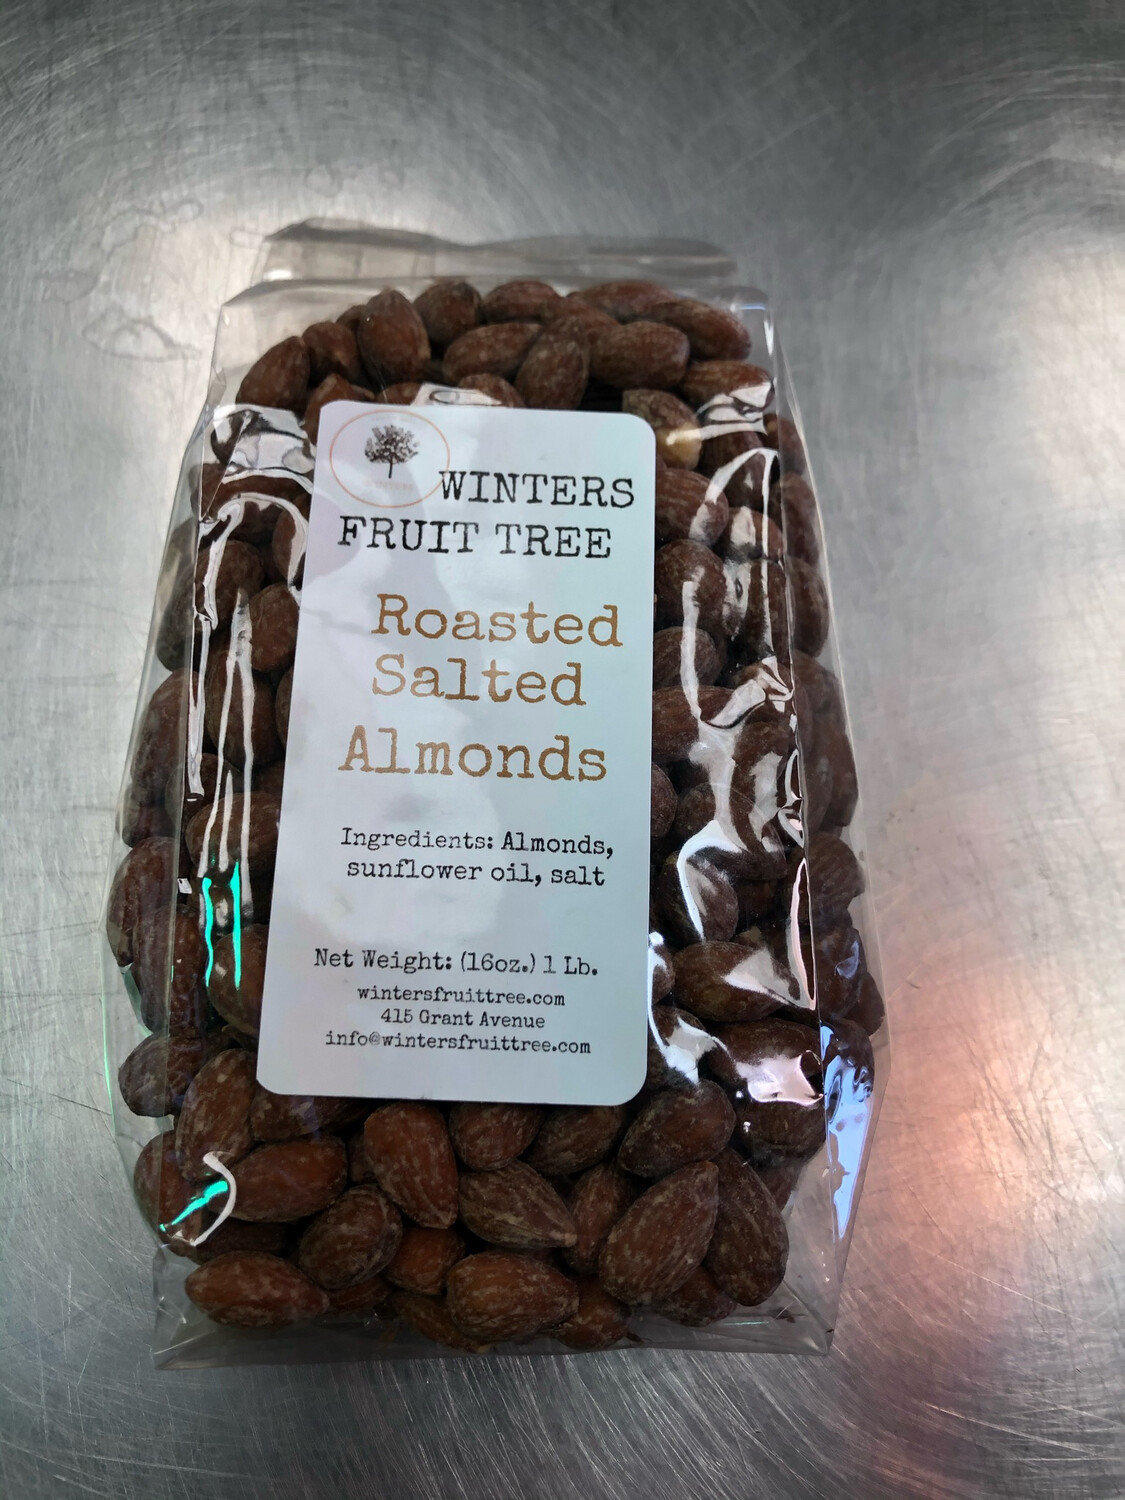 Nuts Almonds Roasted Salted/1 lb bag